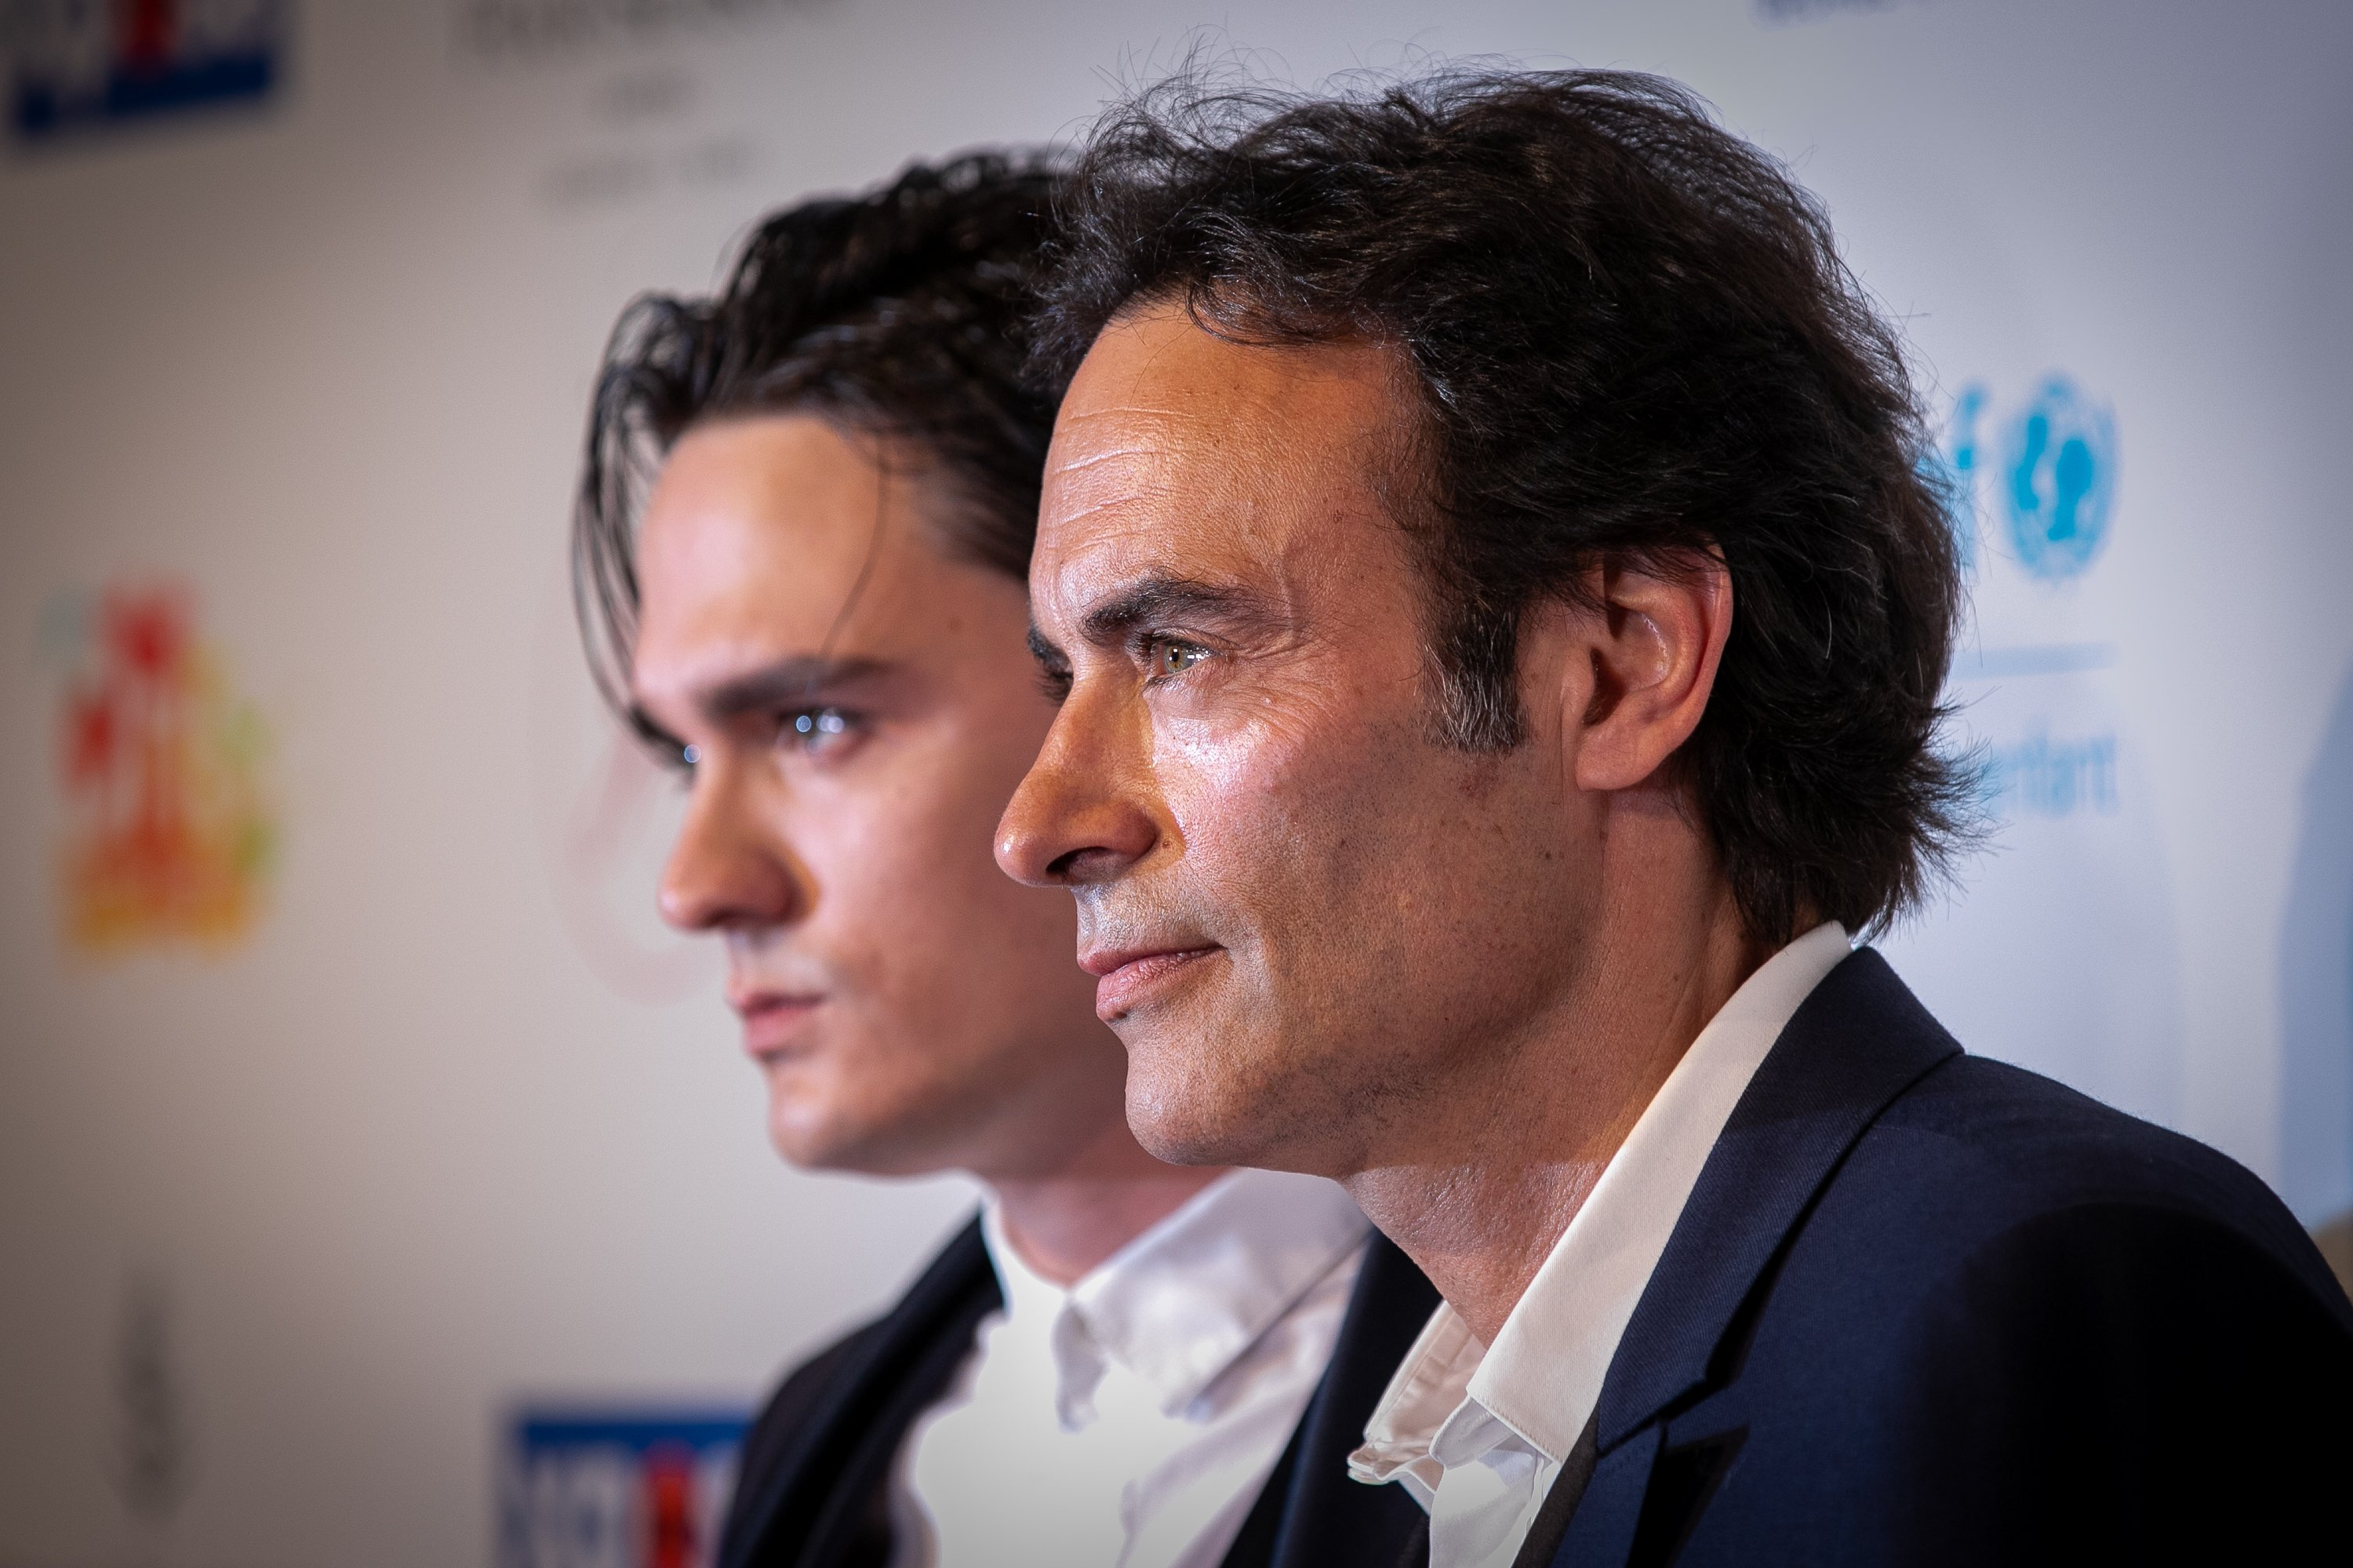 Alain-Fabien Delon et Anthony Delon le 03 juin 2019 à Paris, France | Photo : Getty images